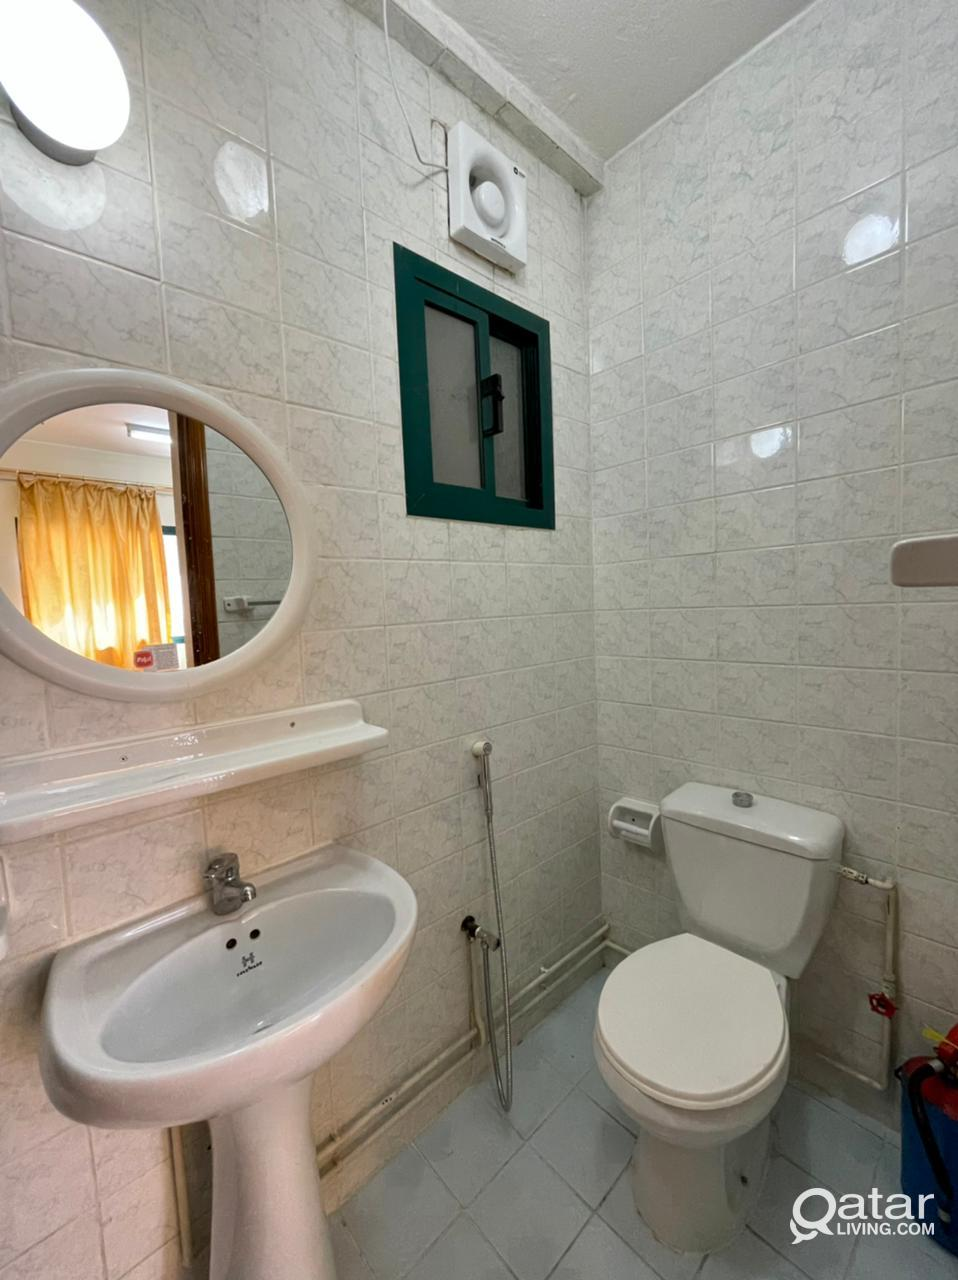 1 MONTH FREE !! SPACIOUS 2 BHK UNFURNISHED AVAILAB